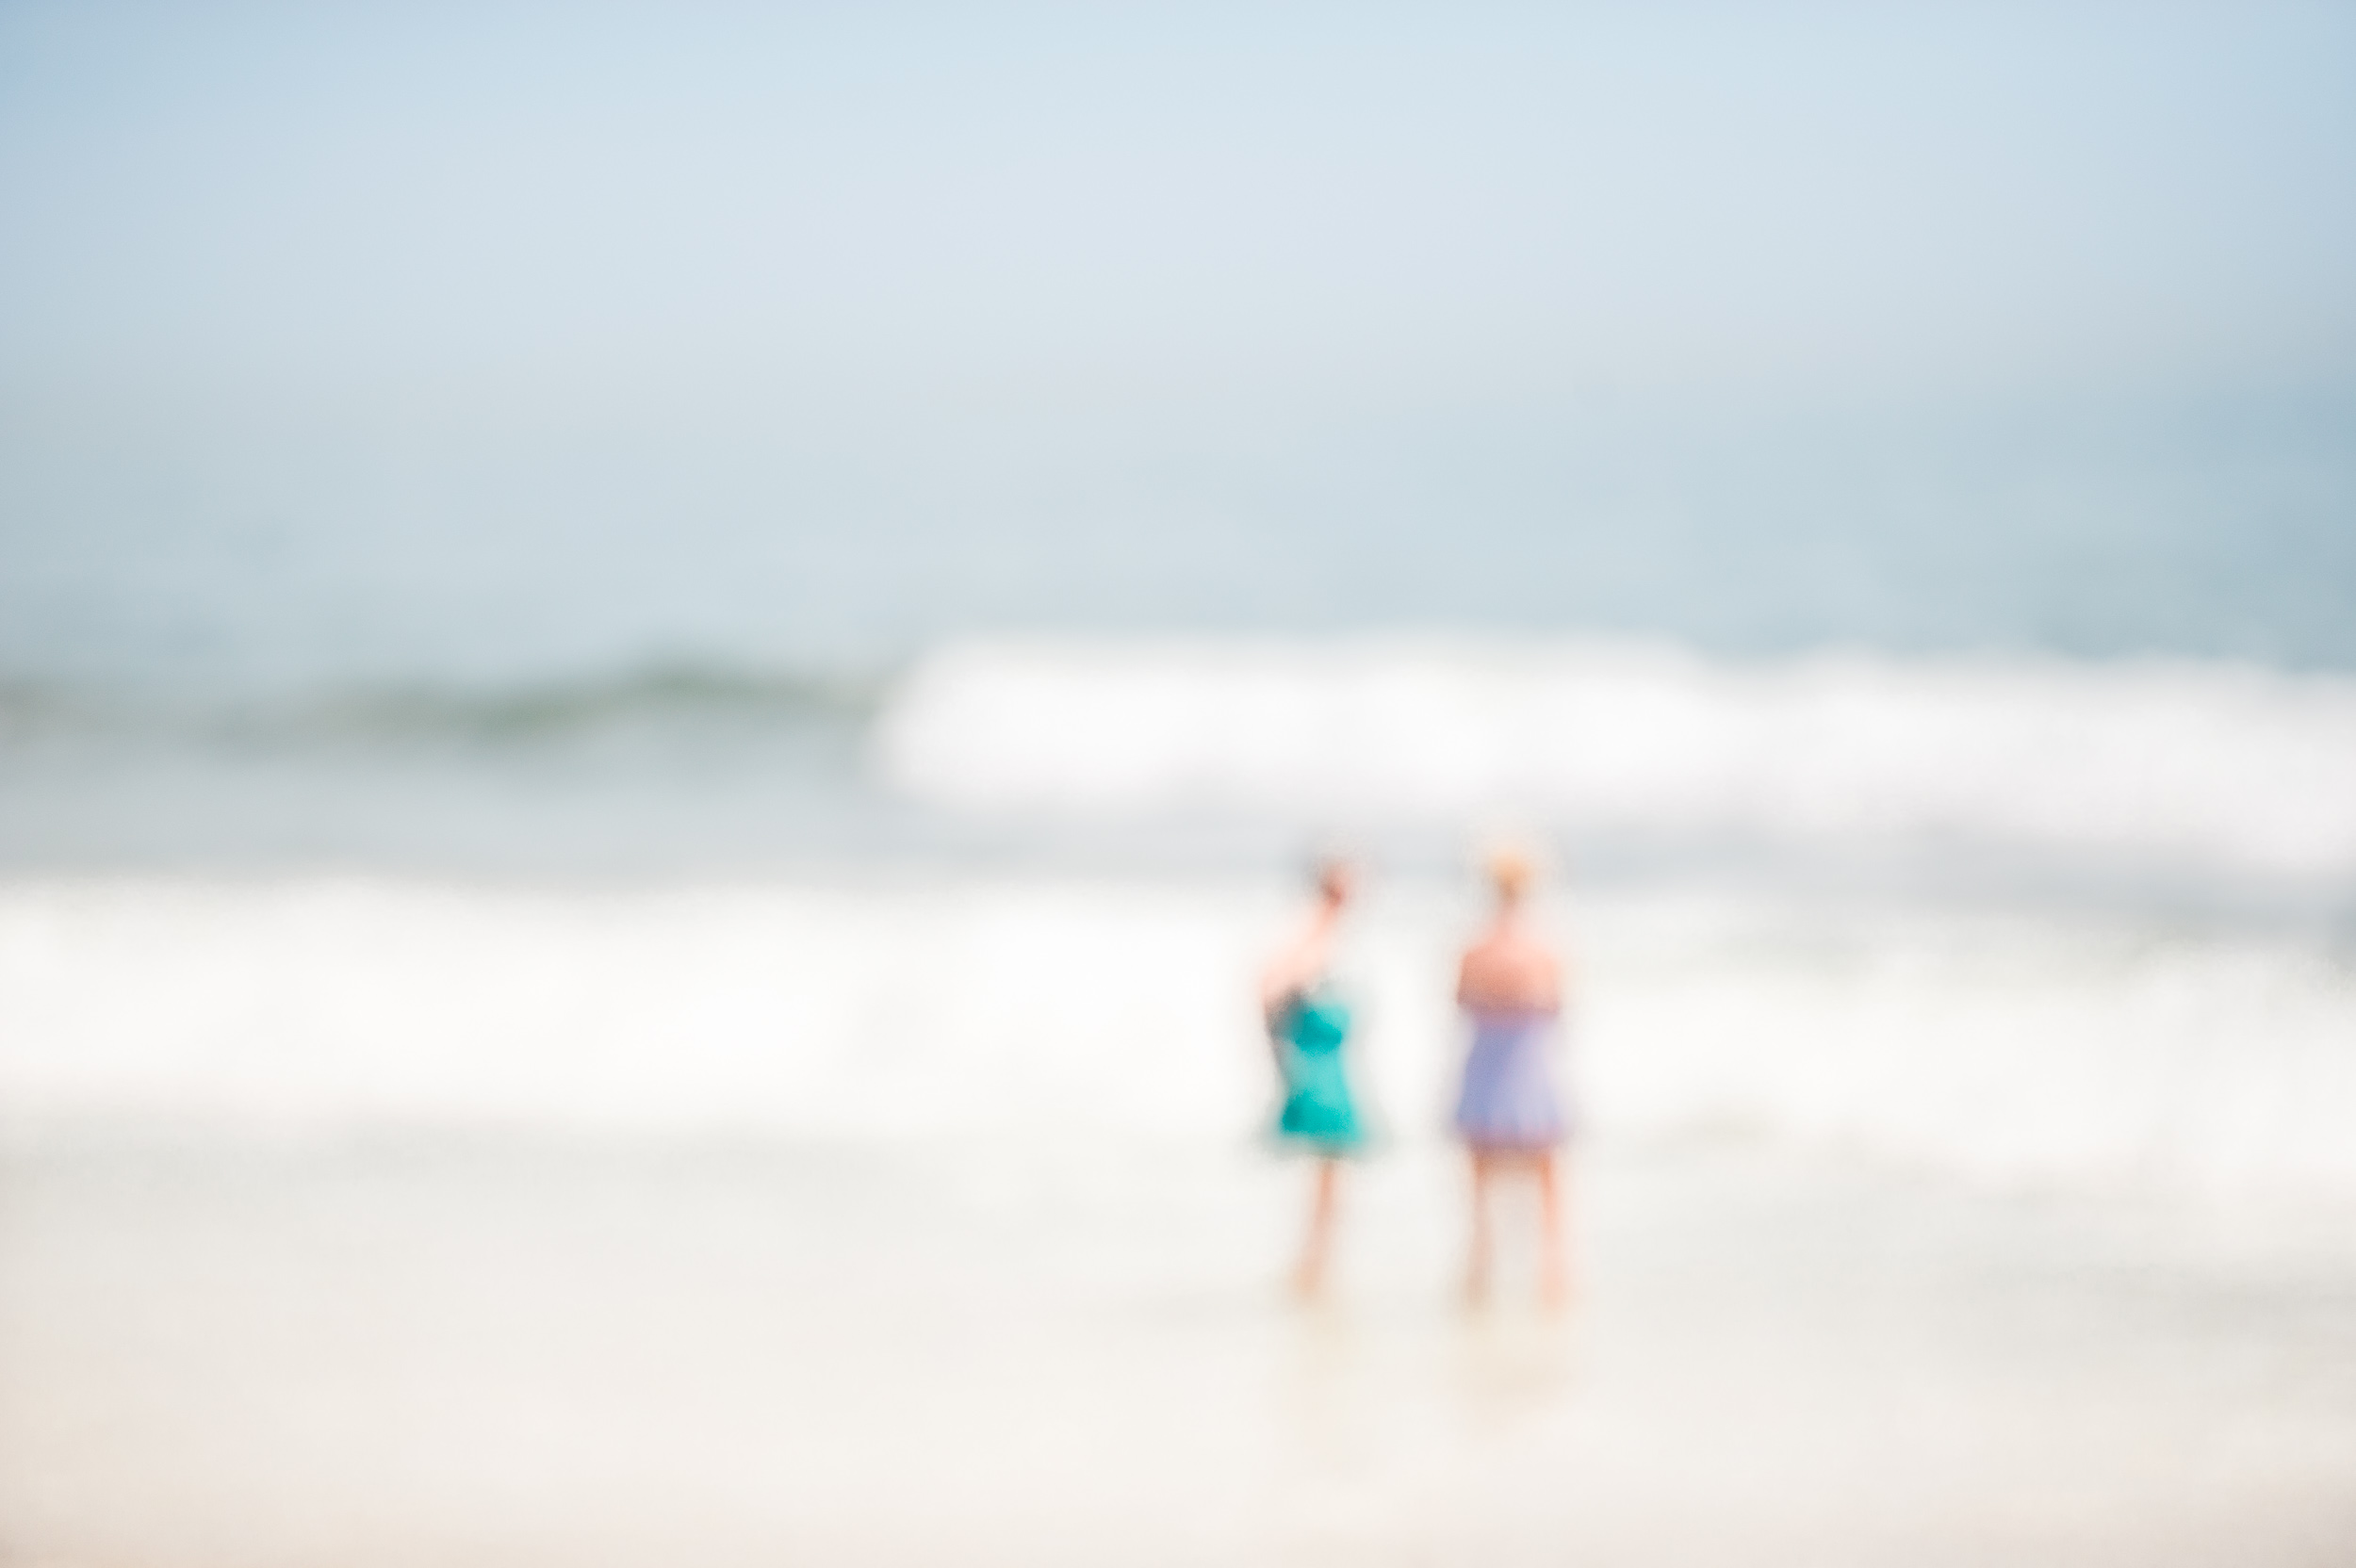 pam_korman_photography-sign_of_water-people_on_the_beach-atlantic_ocean-07.jpg